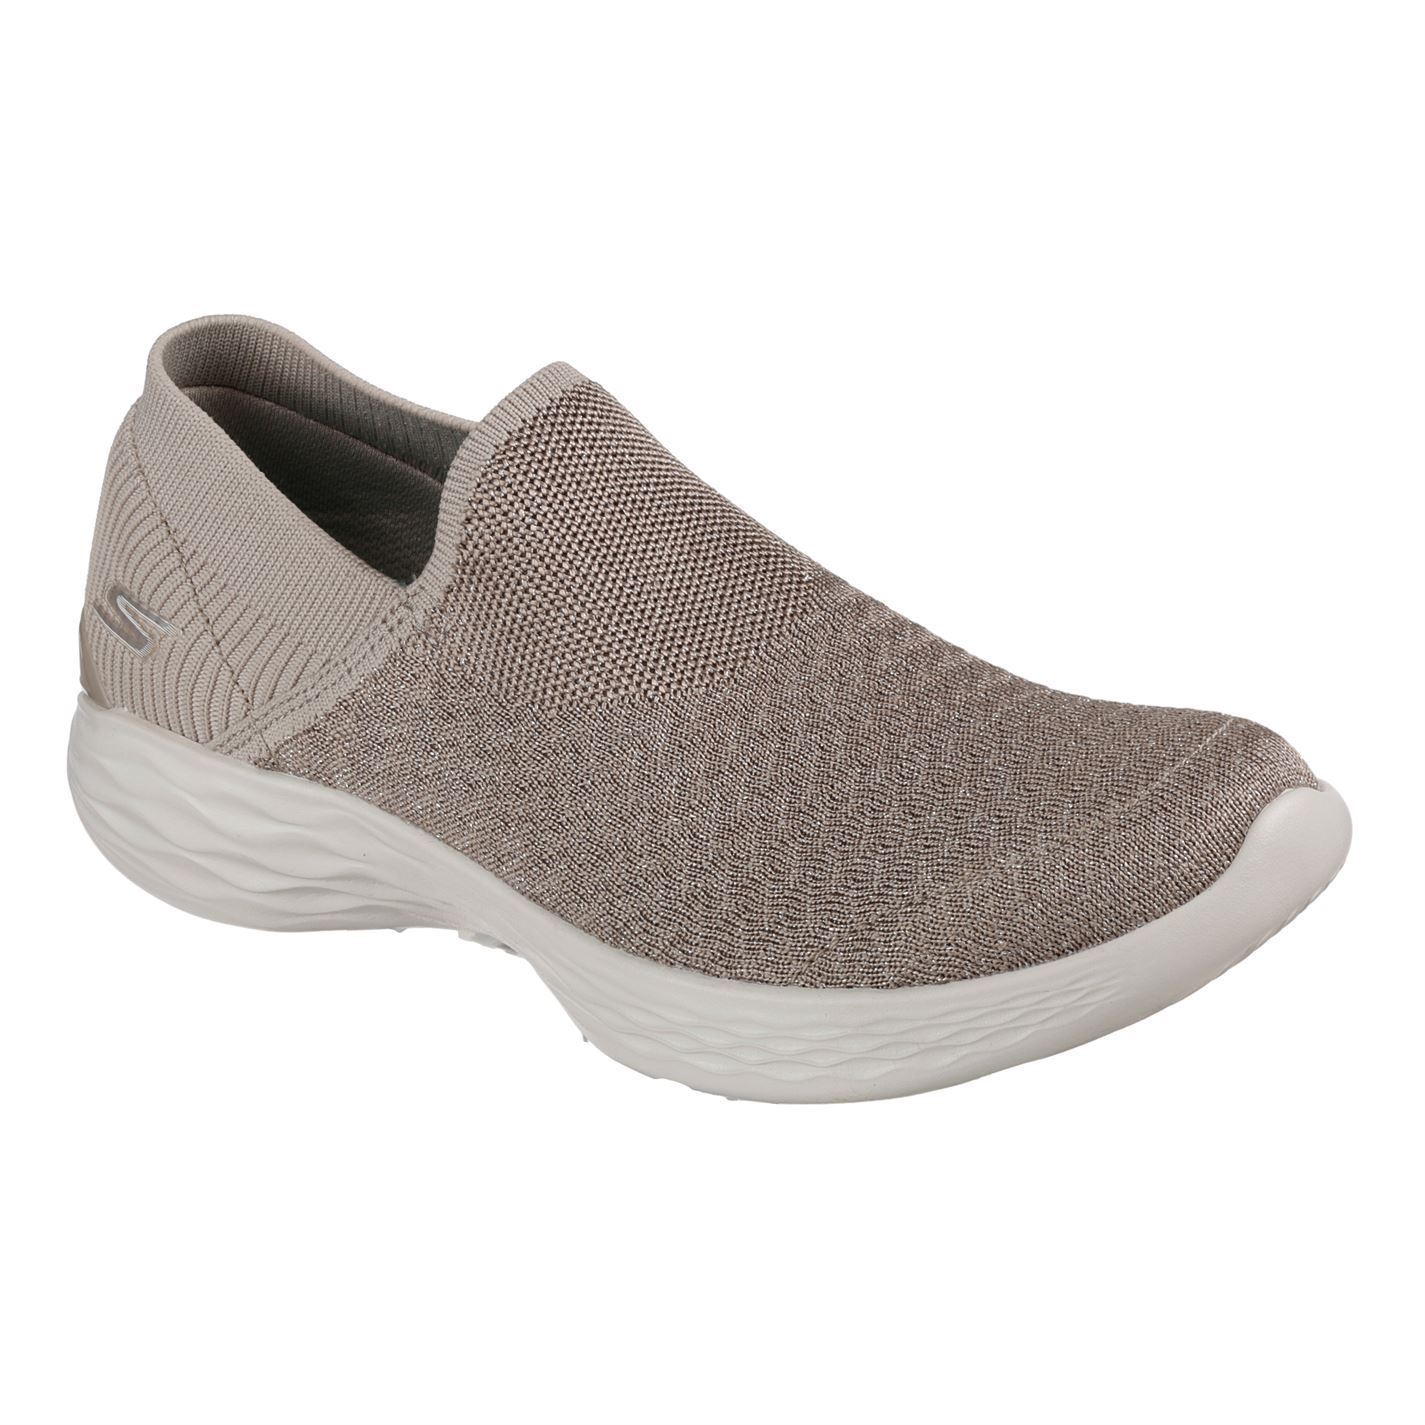 Details about Skechers you Transcend Sneakers 14959 Womens Memory Foam Lifestyle show original title